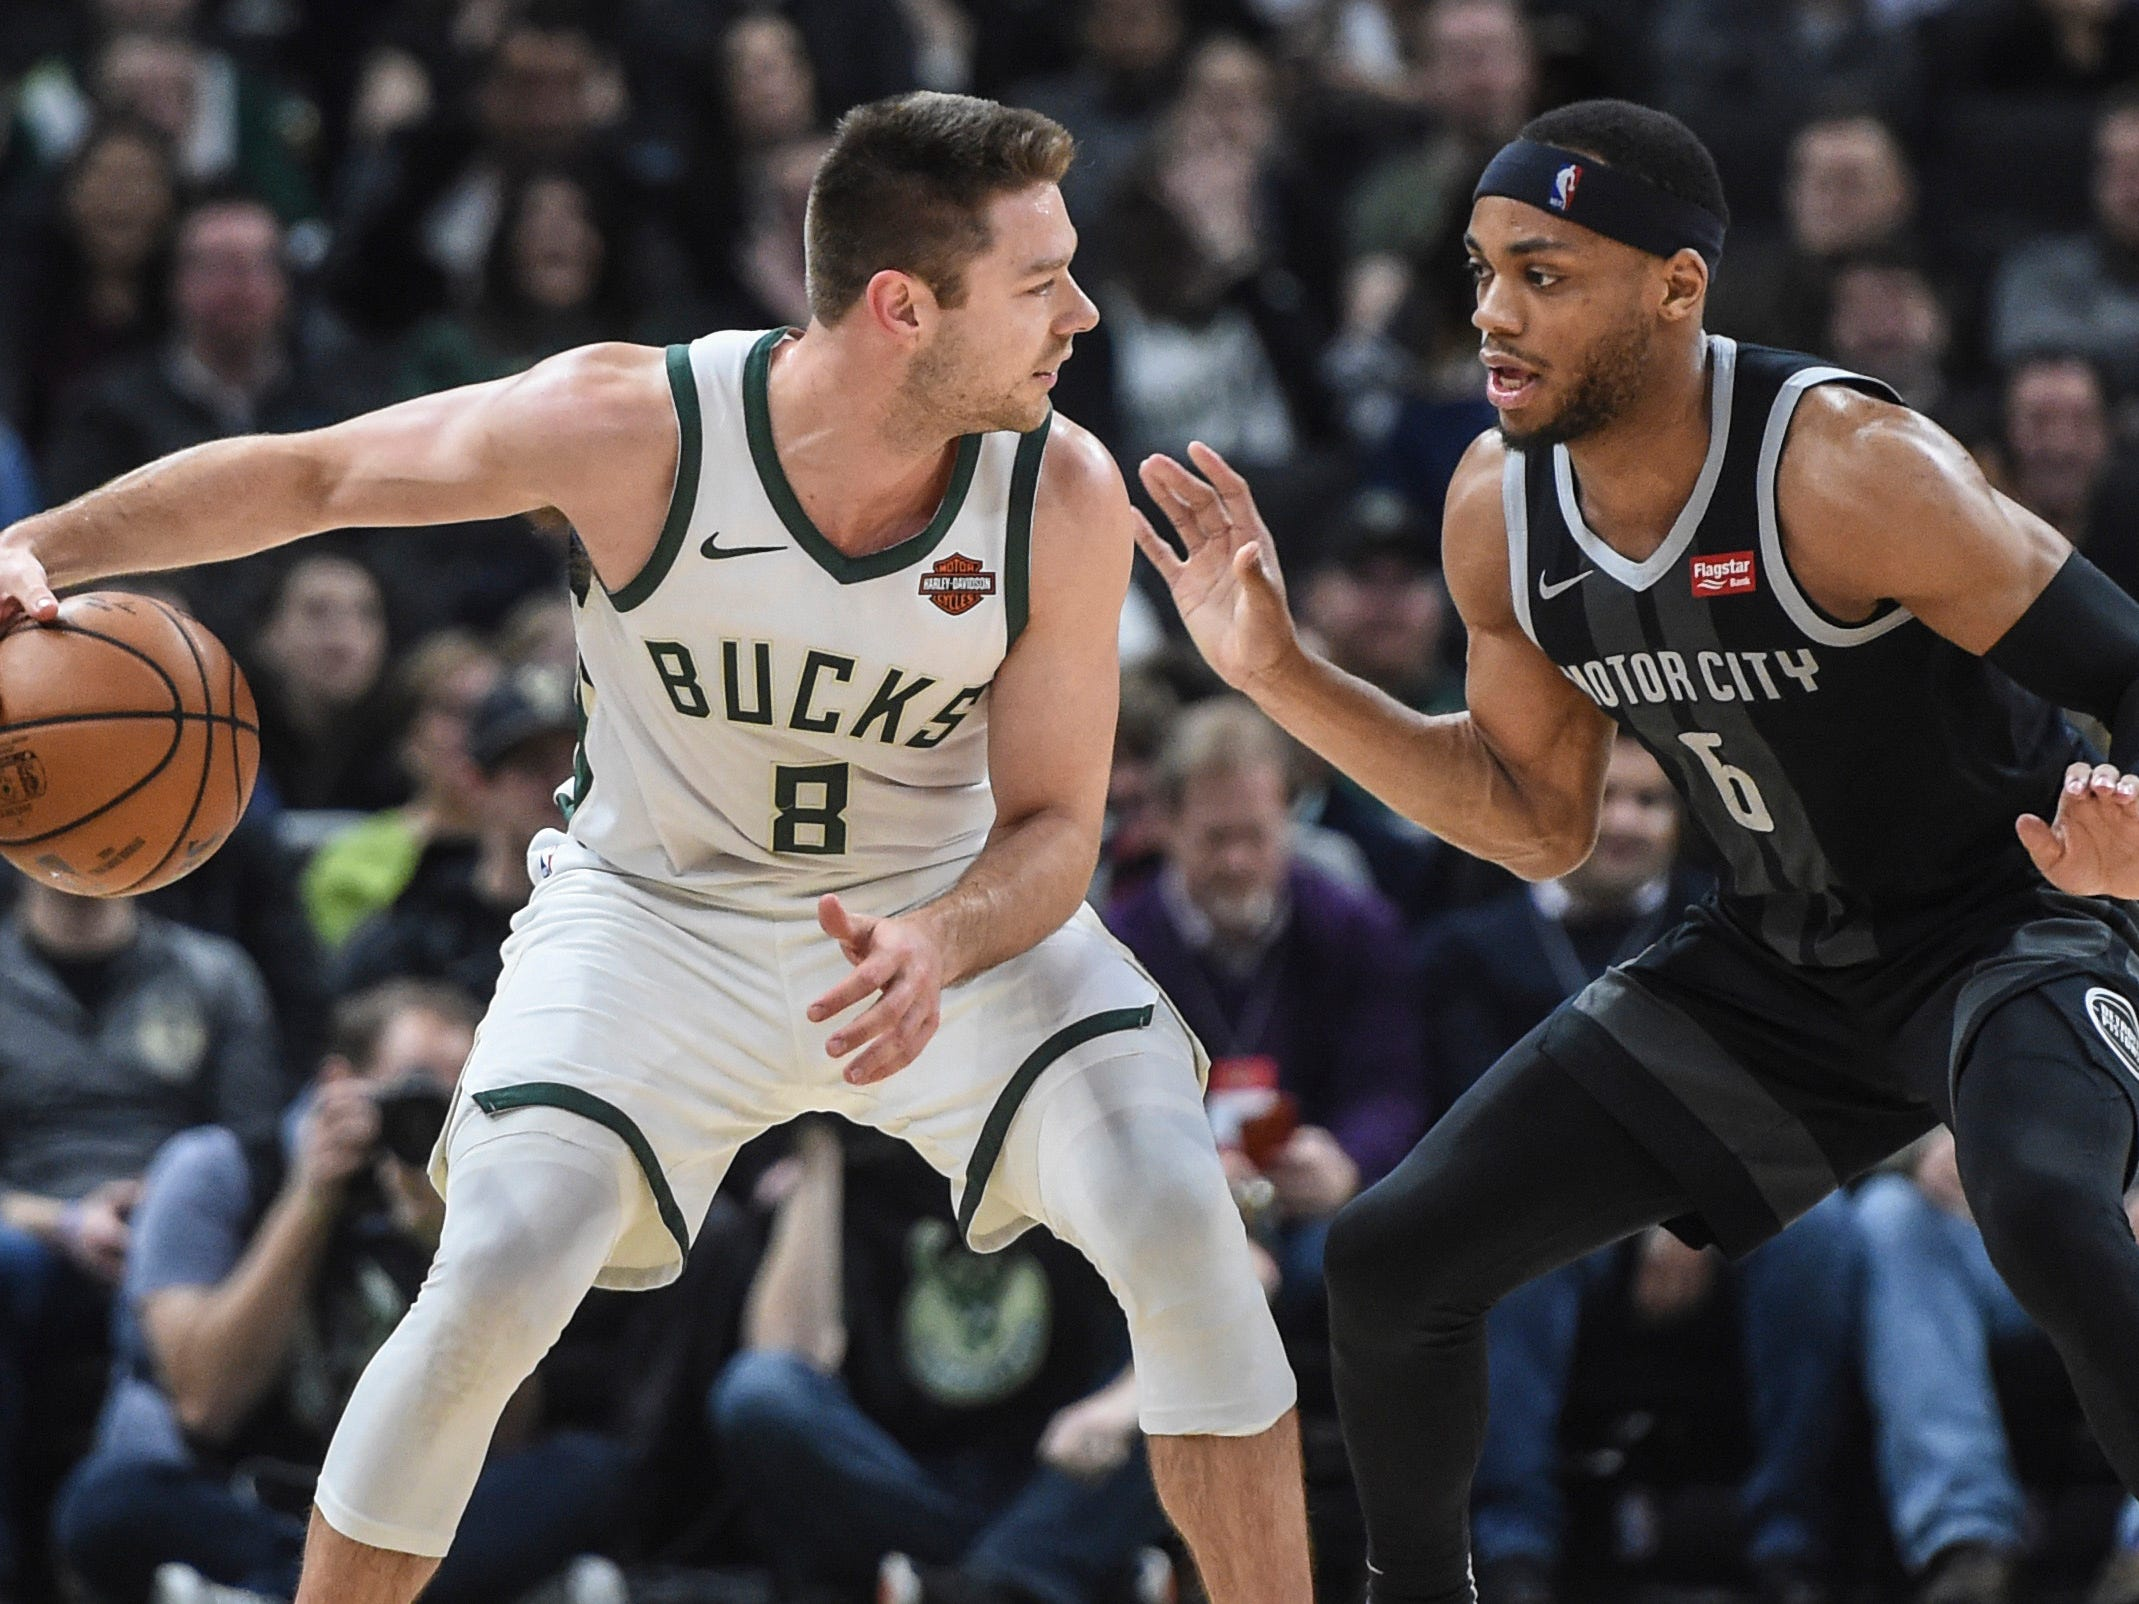 Bucks guard Matthew Dellavedova works against Bruce Brown of the Pistons during the fourth quarter Wednesday night.